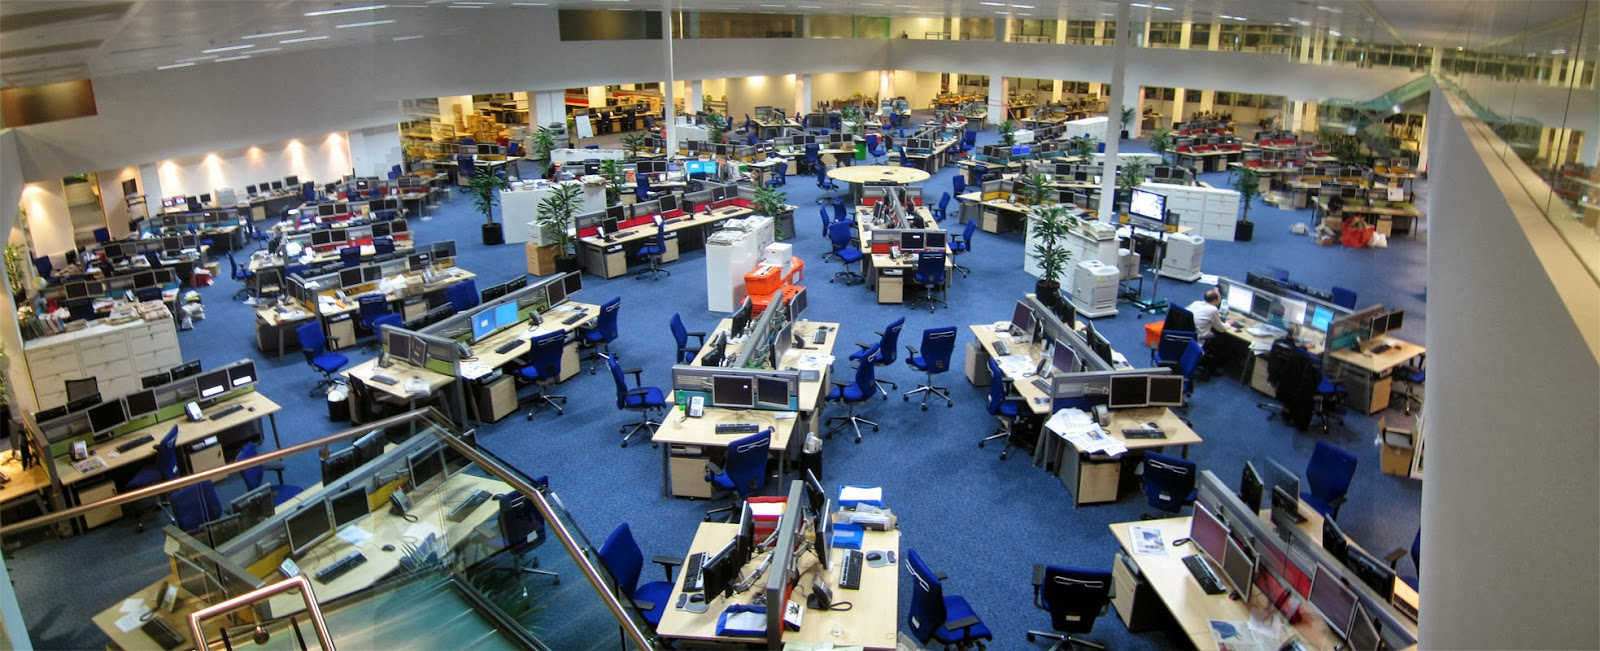 Example of open plan office